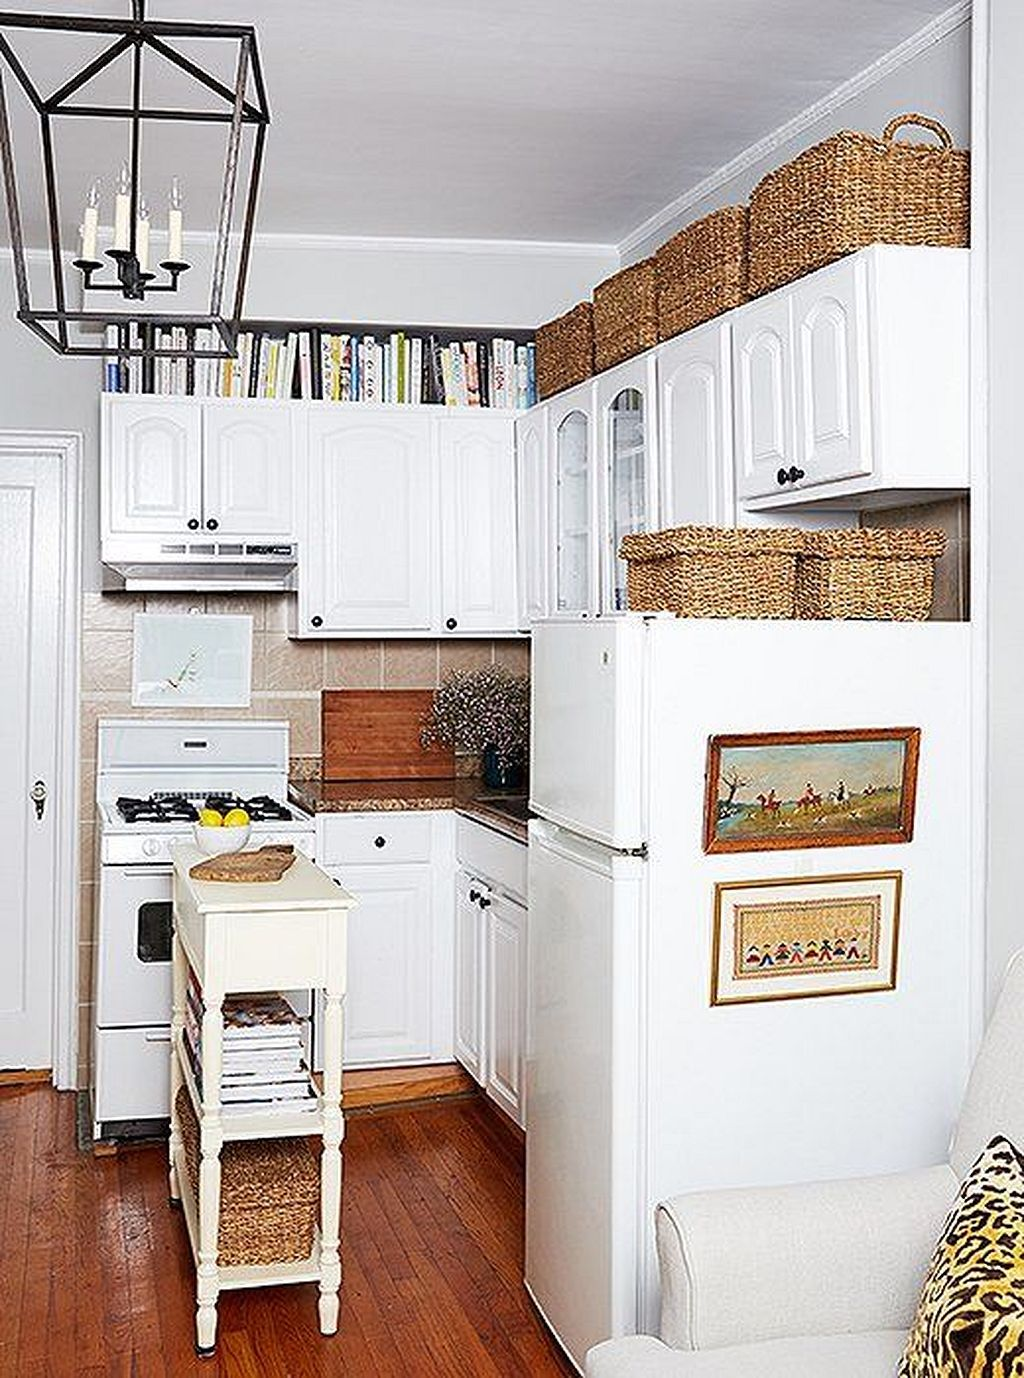 30+ Amazing Storage Hacks on a Budget For Small Kitchen   Small ...